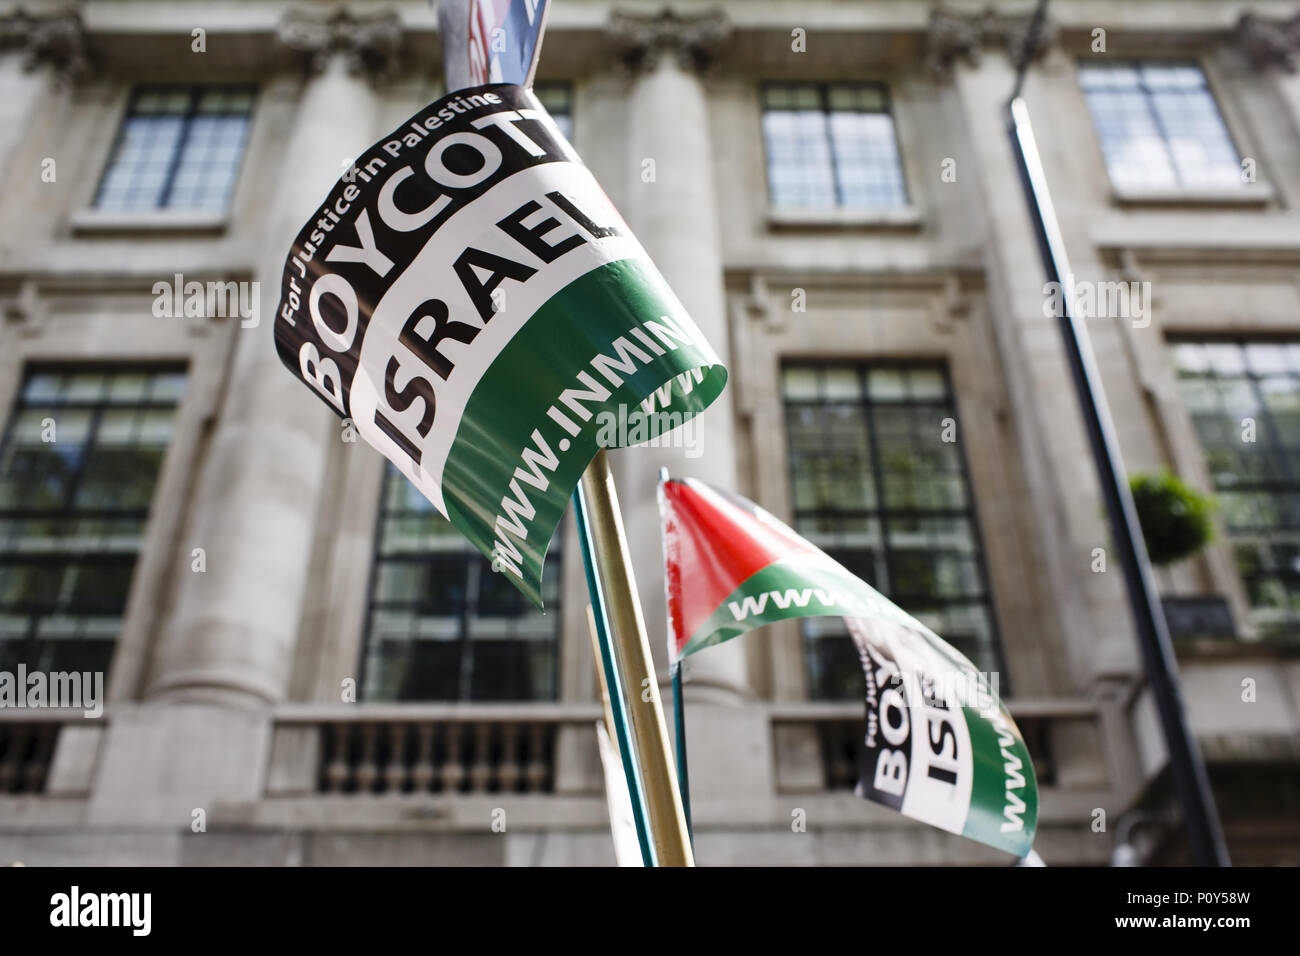 London, UK. 10th June, 2018. 'Boycott Israel' flags are held overhead during the annual pro-Palestine/anti-Israel Al Quds Day demonstration in central London. The demonstration is notably controversial in the city for the flying of Hizbullah flags that typically takes place during the course of it. Credit: David Cliff/SOPA Images/ZUMA Wire/Alamy Live News - Stock Image